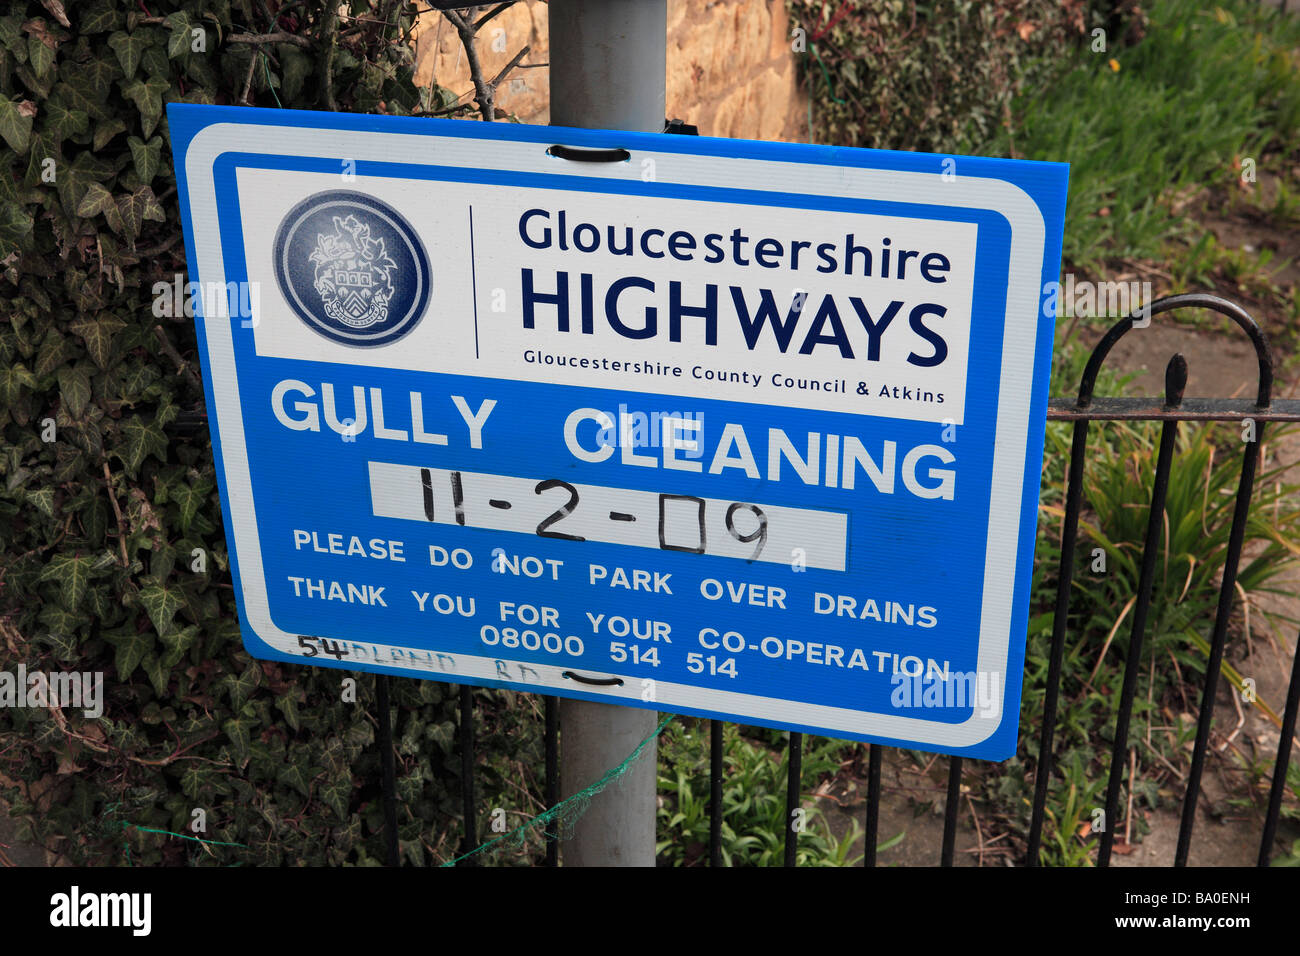 Cotswolds Gully Cleaning Sign - Stock Image